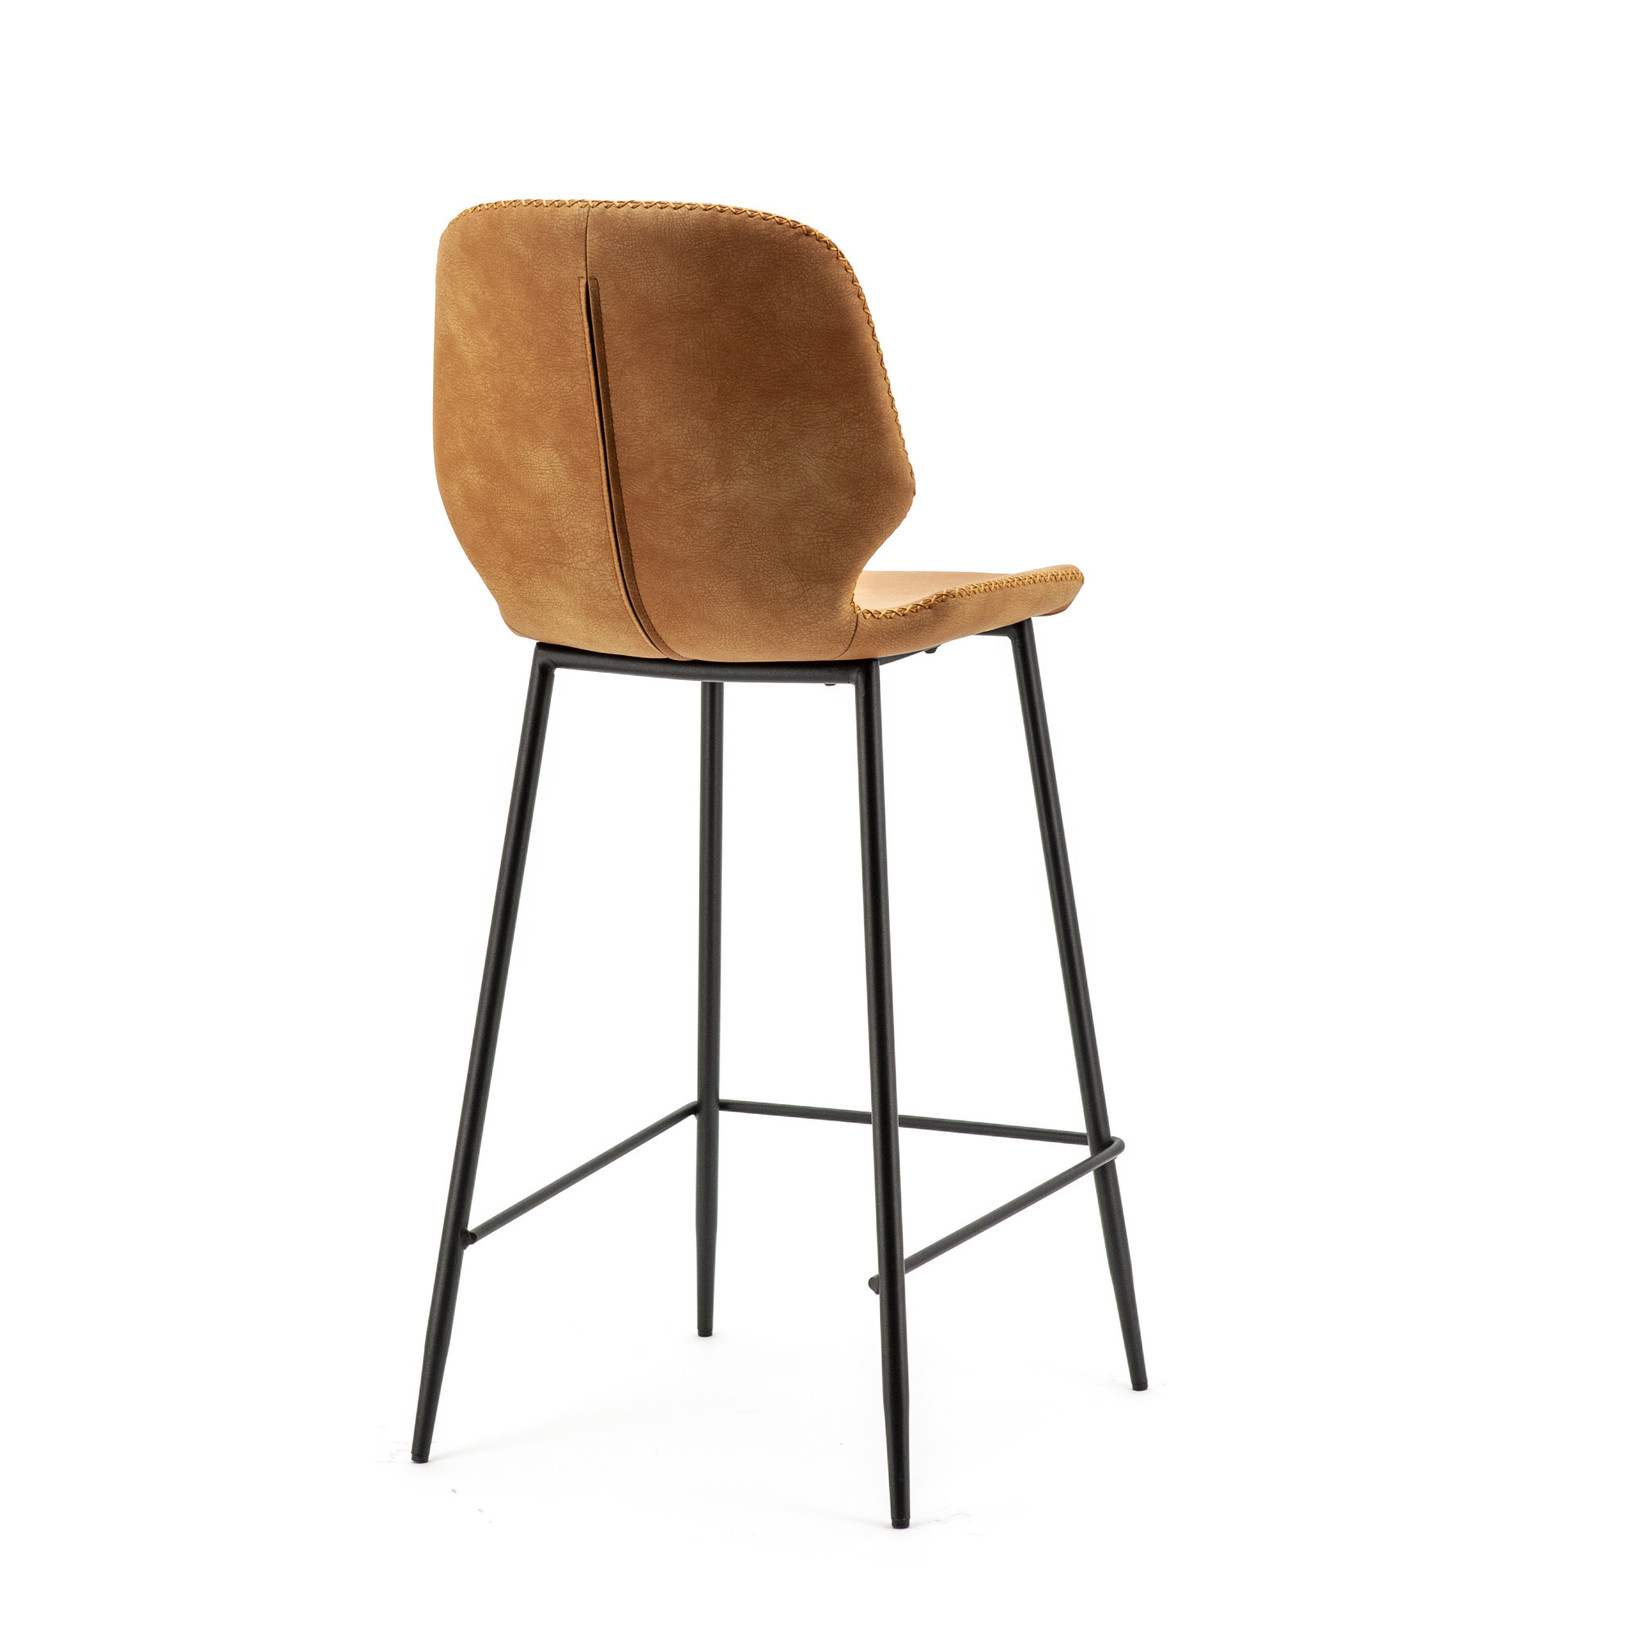 By Boo By Boo Barchair Seashell low - cognac